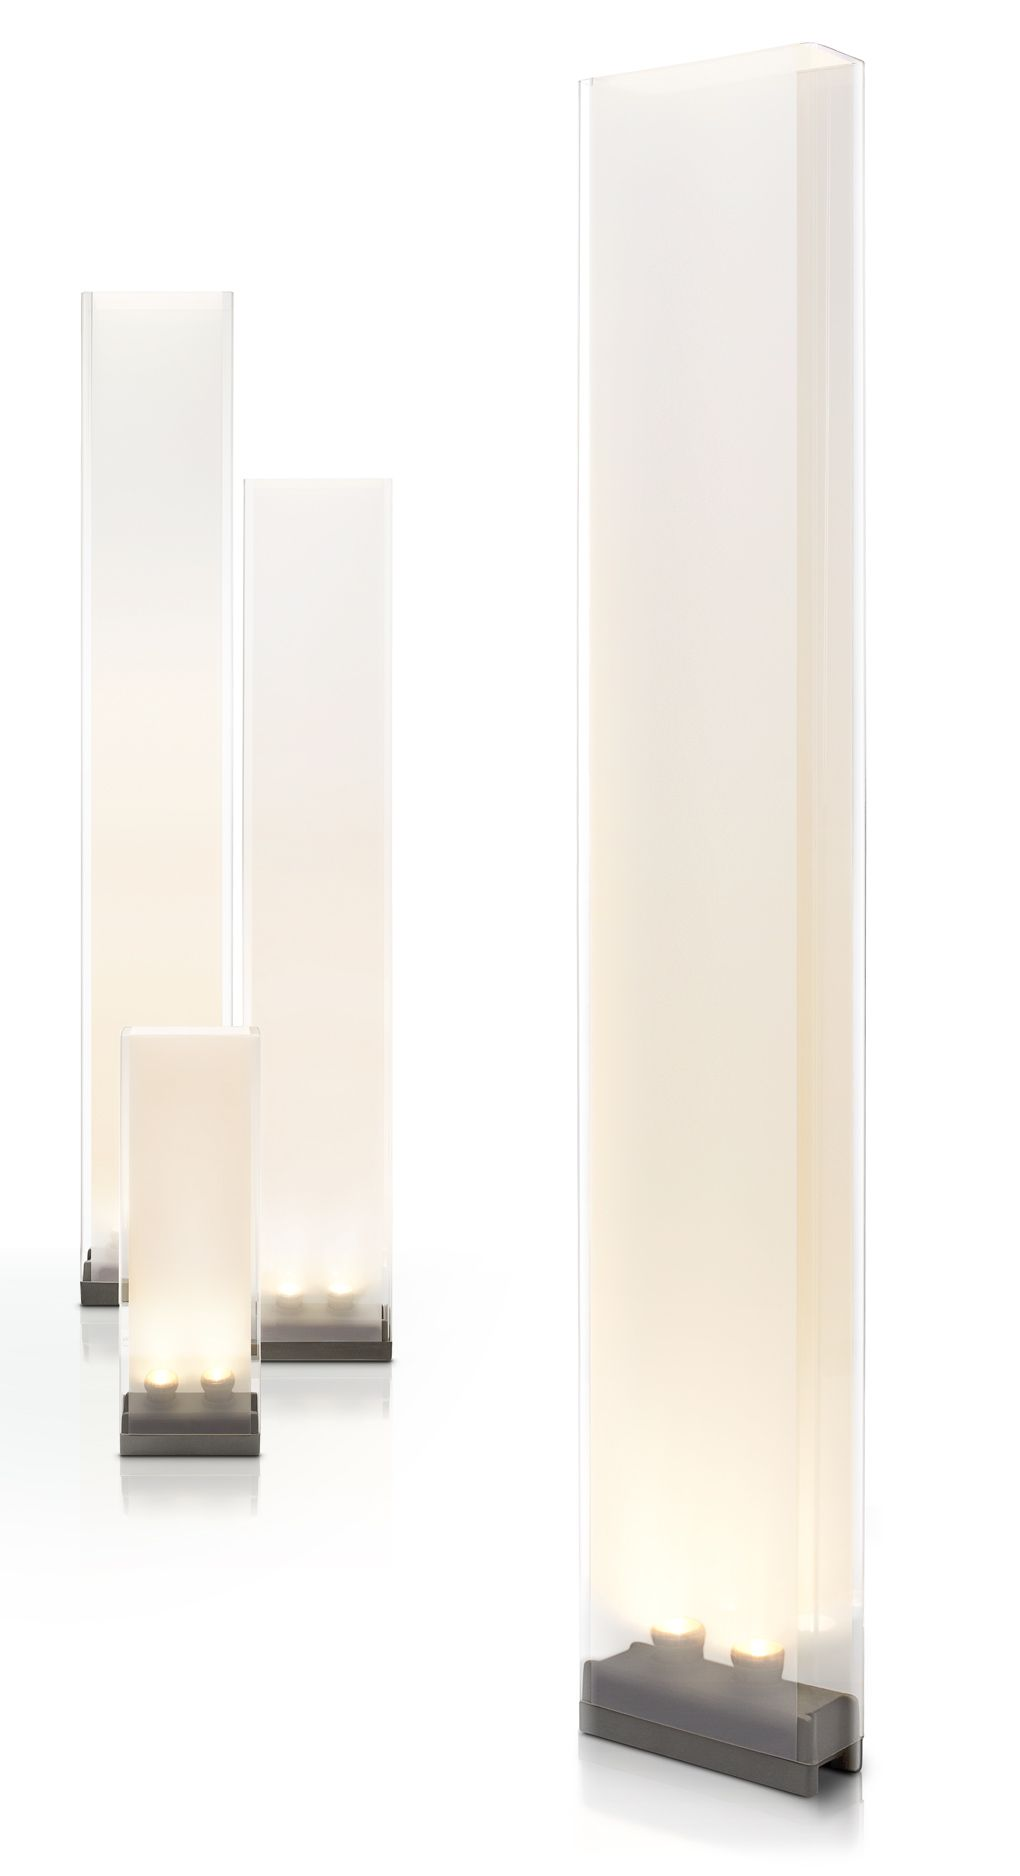 Pablo Pardo 'Cortina' family of floor and table lamps. From 61cm ...